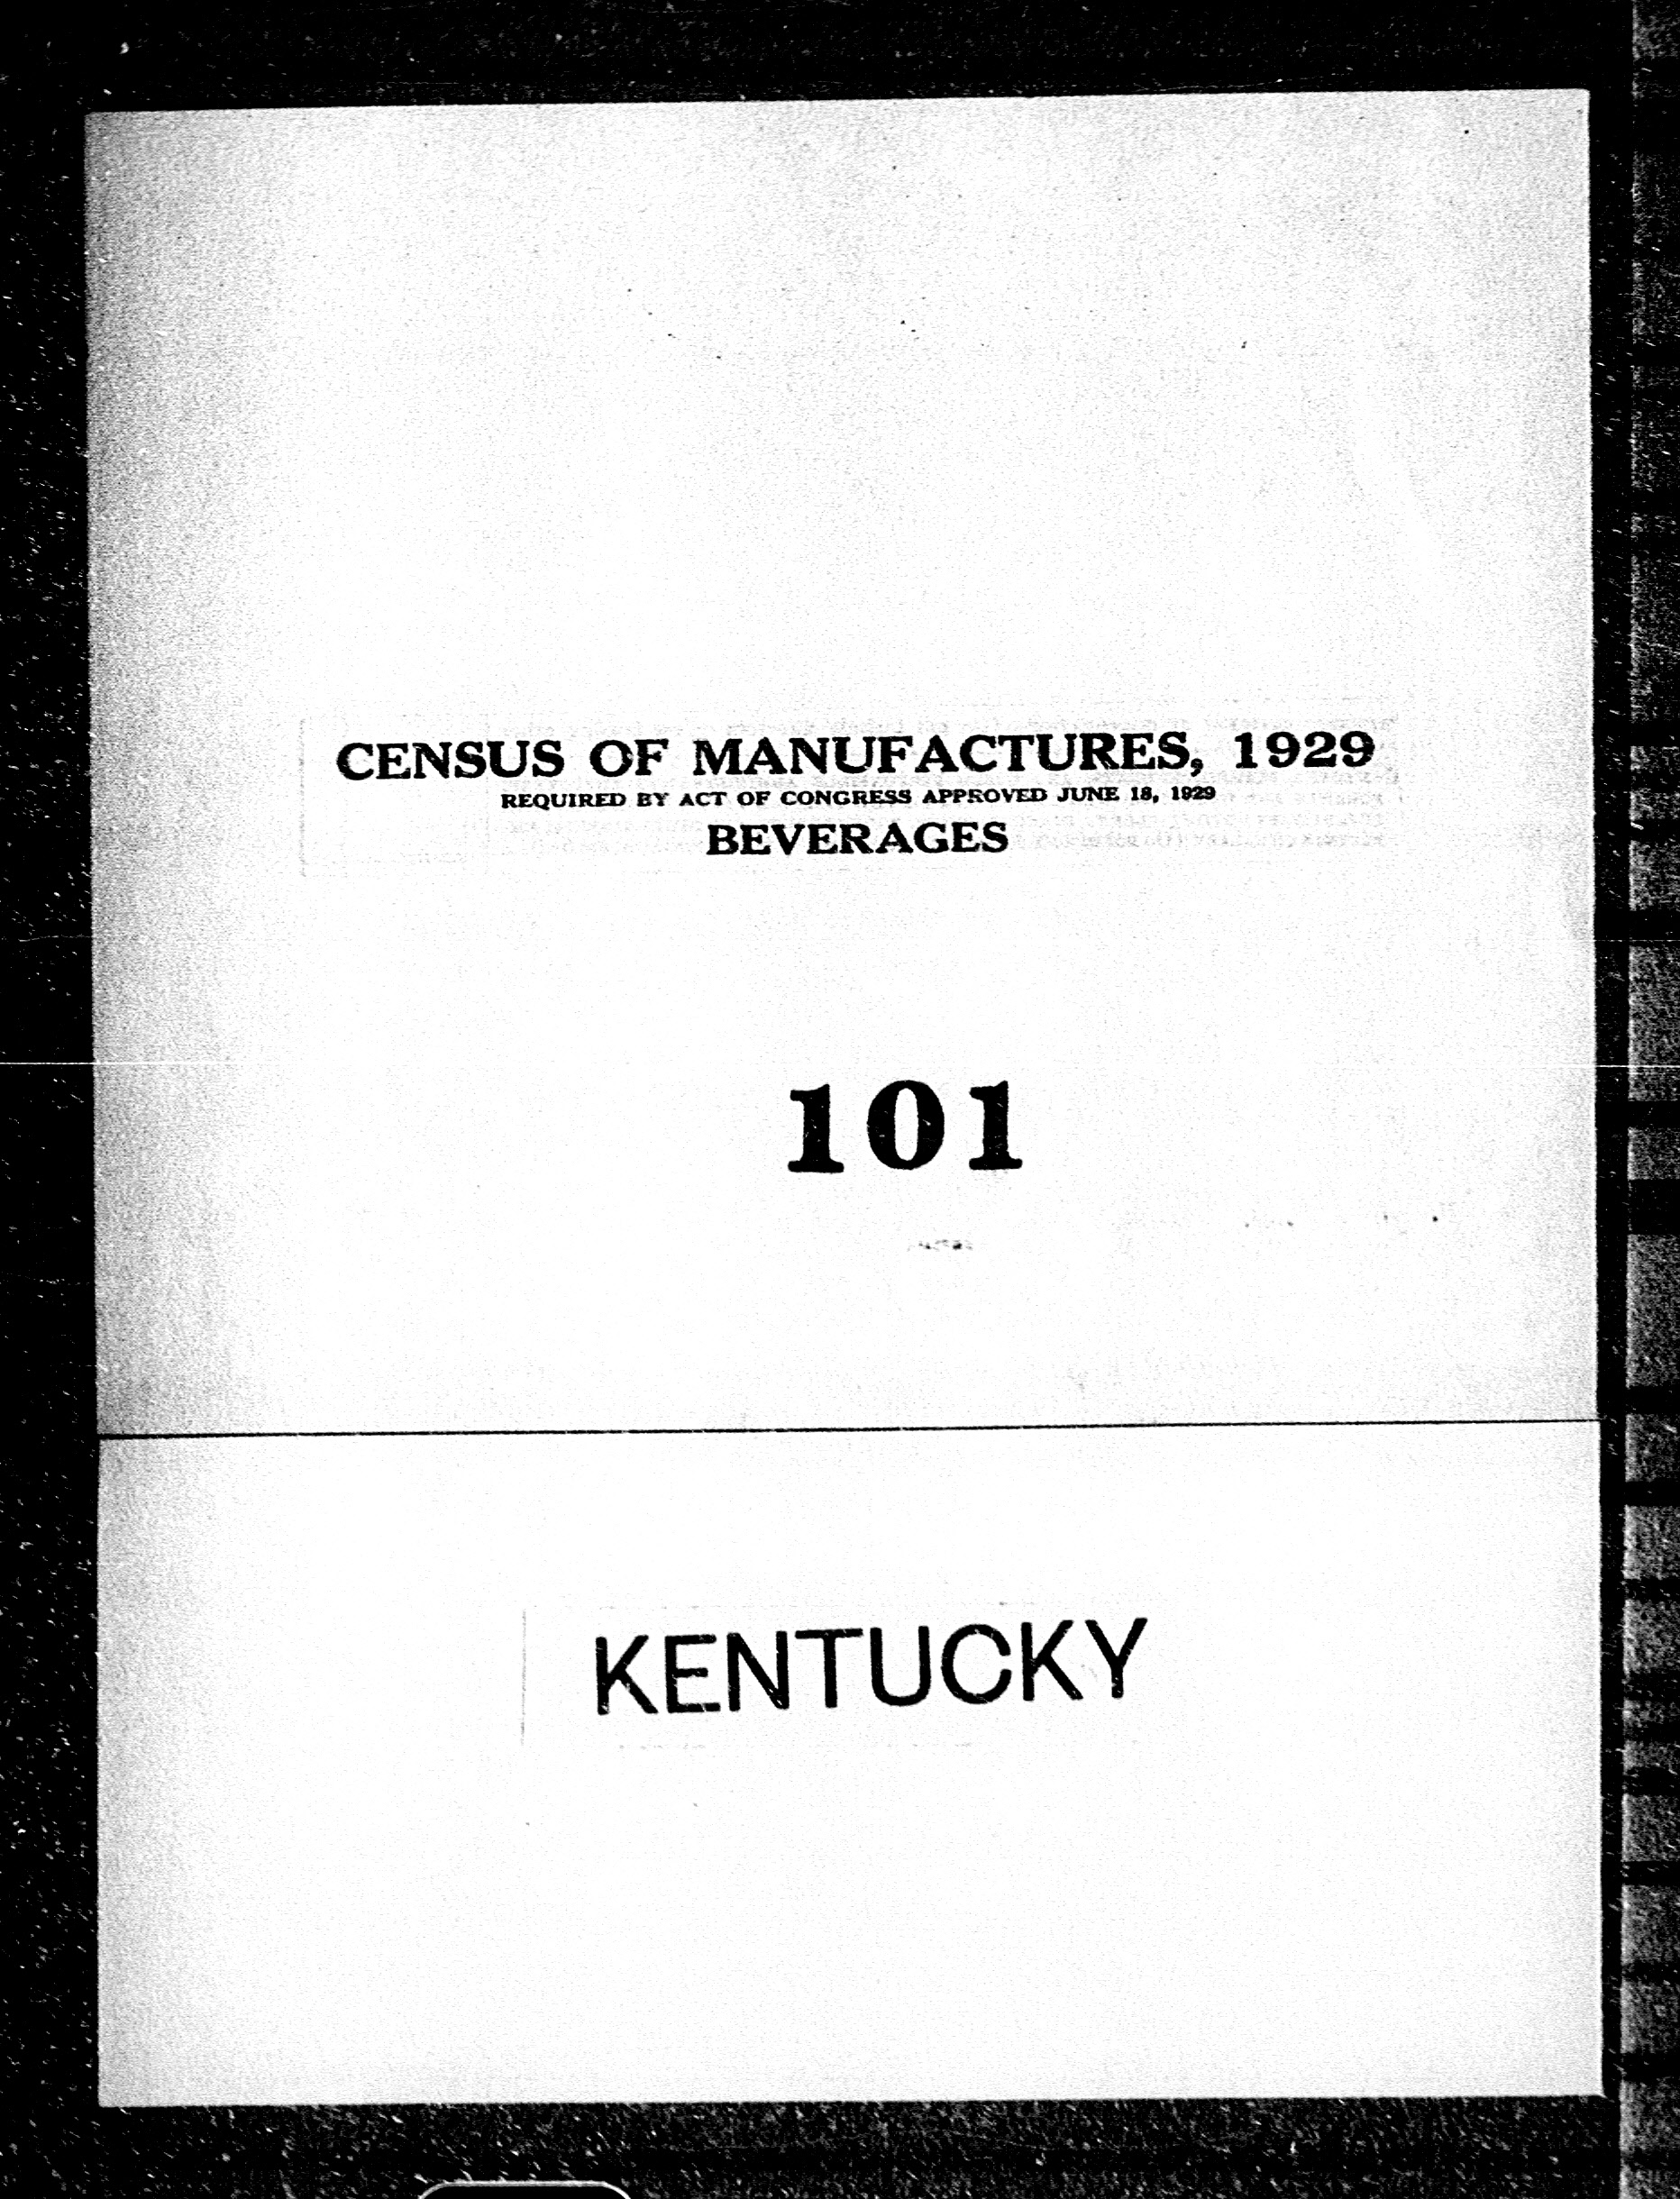 Kentucky: Industry No. 101 - Beverages